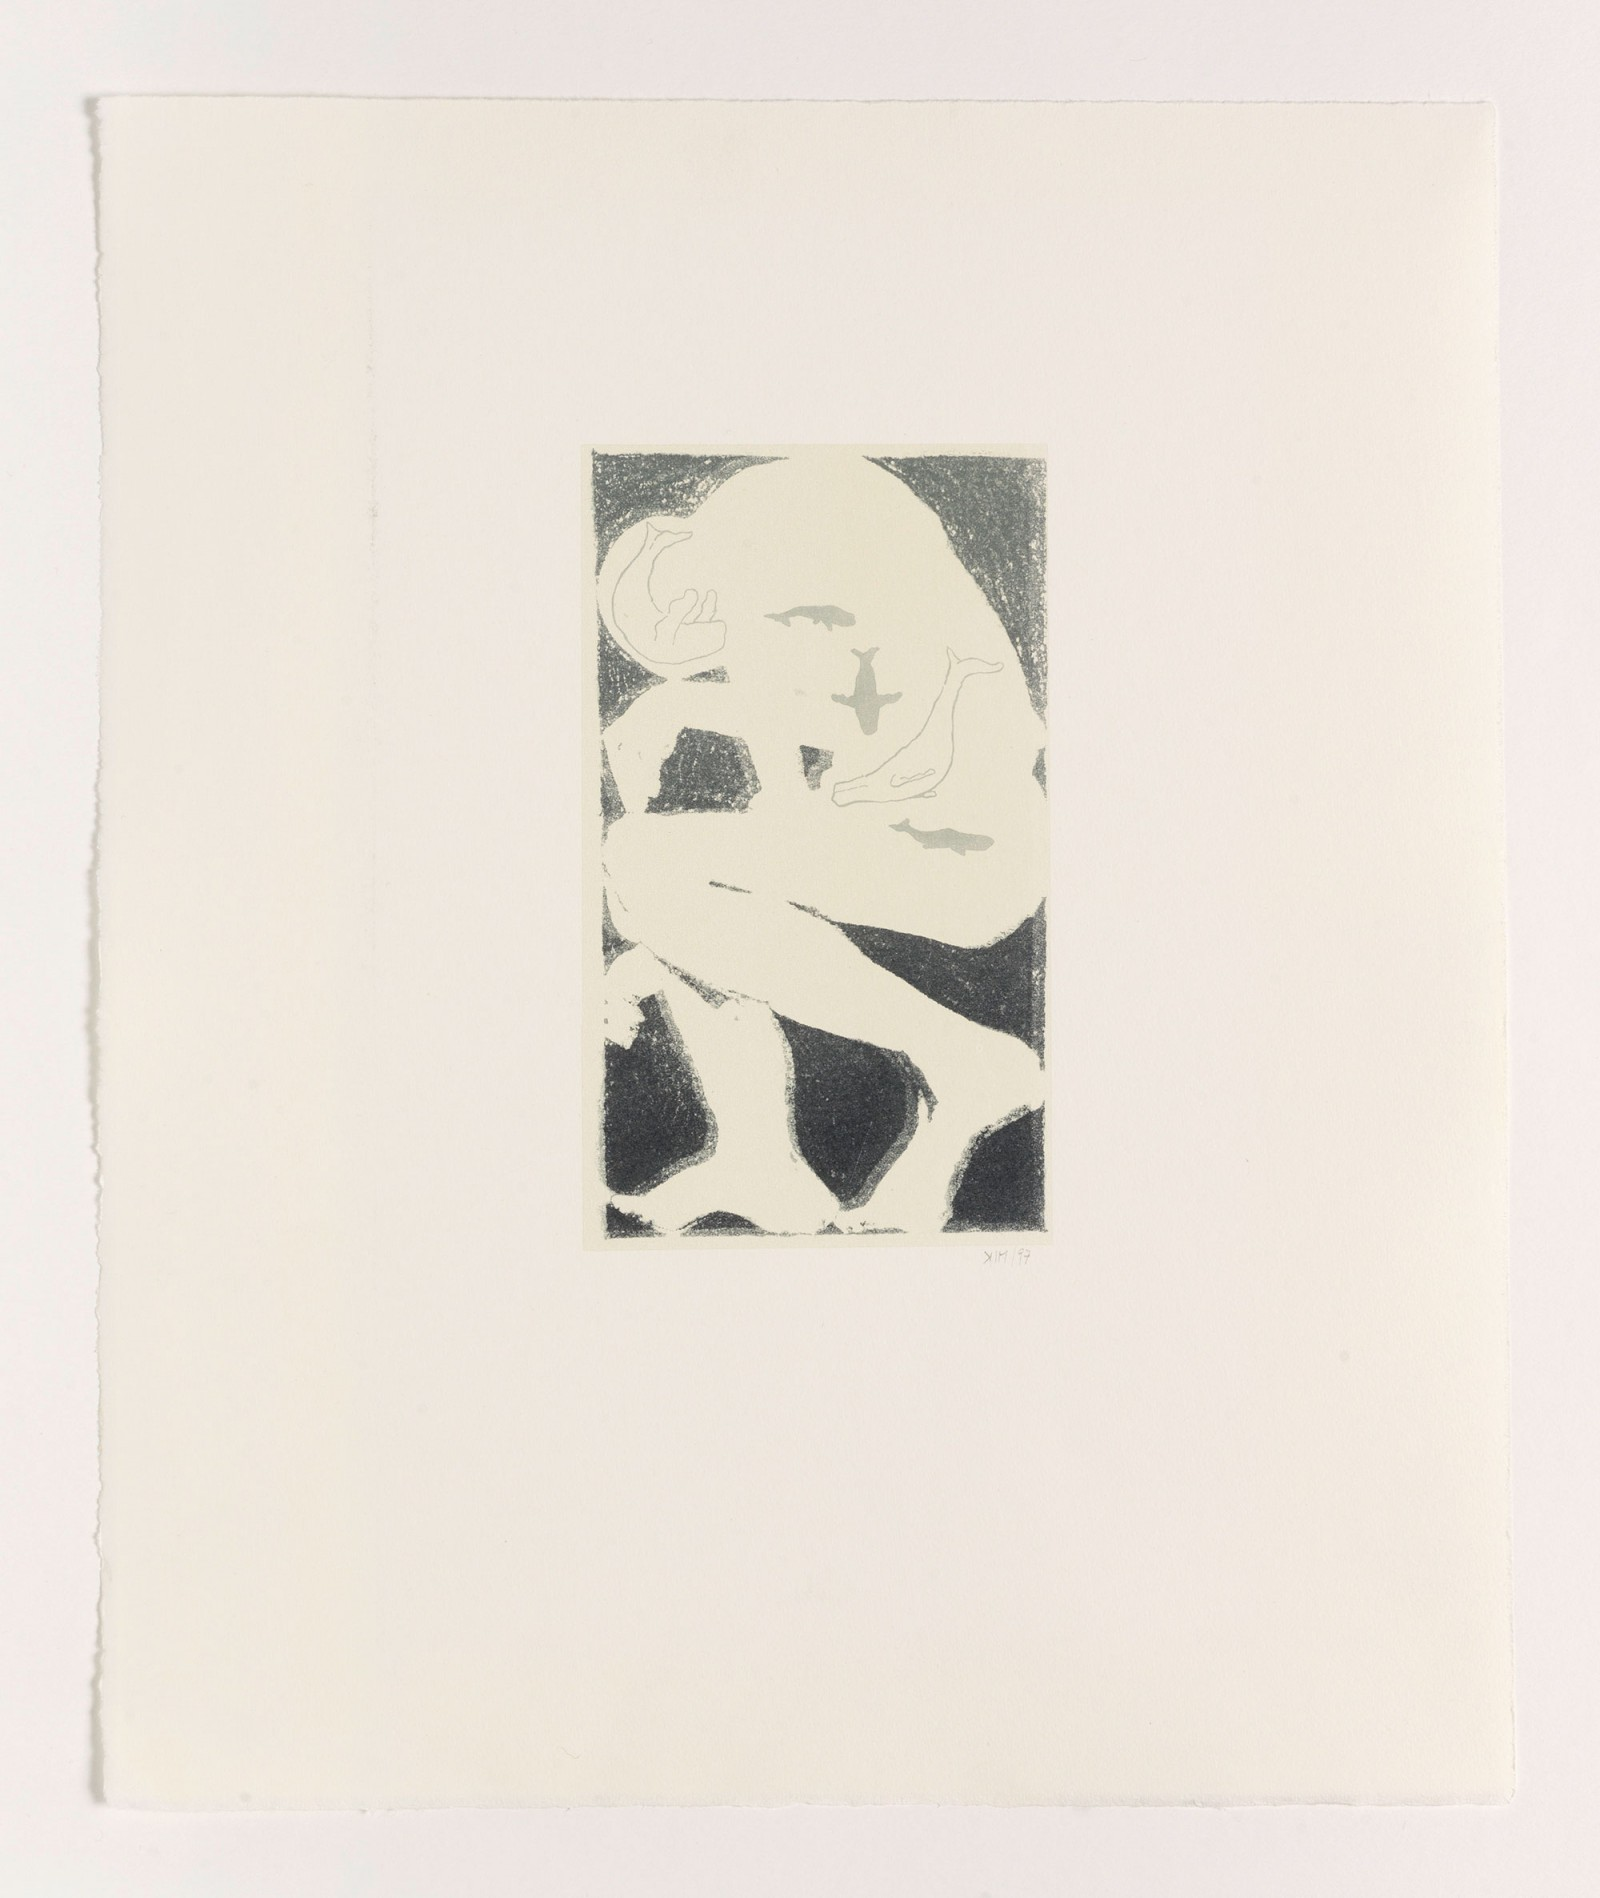 Kim Nekarda: untitled, 1997, lithography on paper, 38 x 32 cm